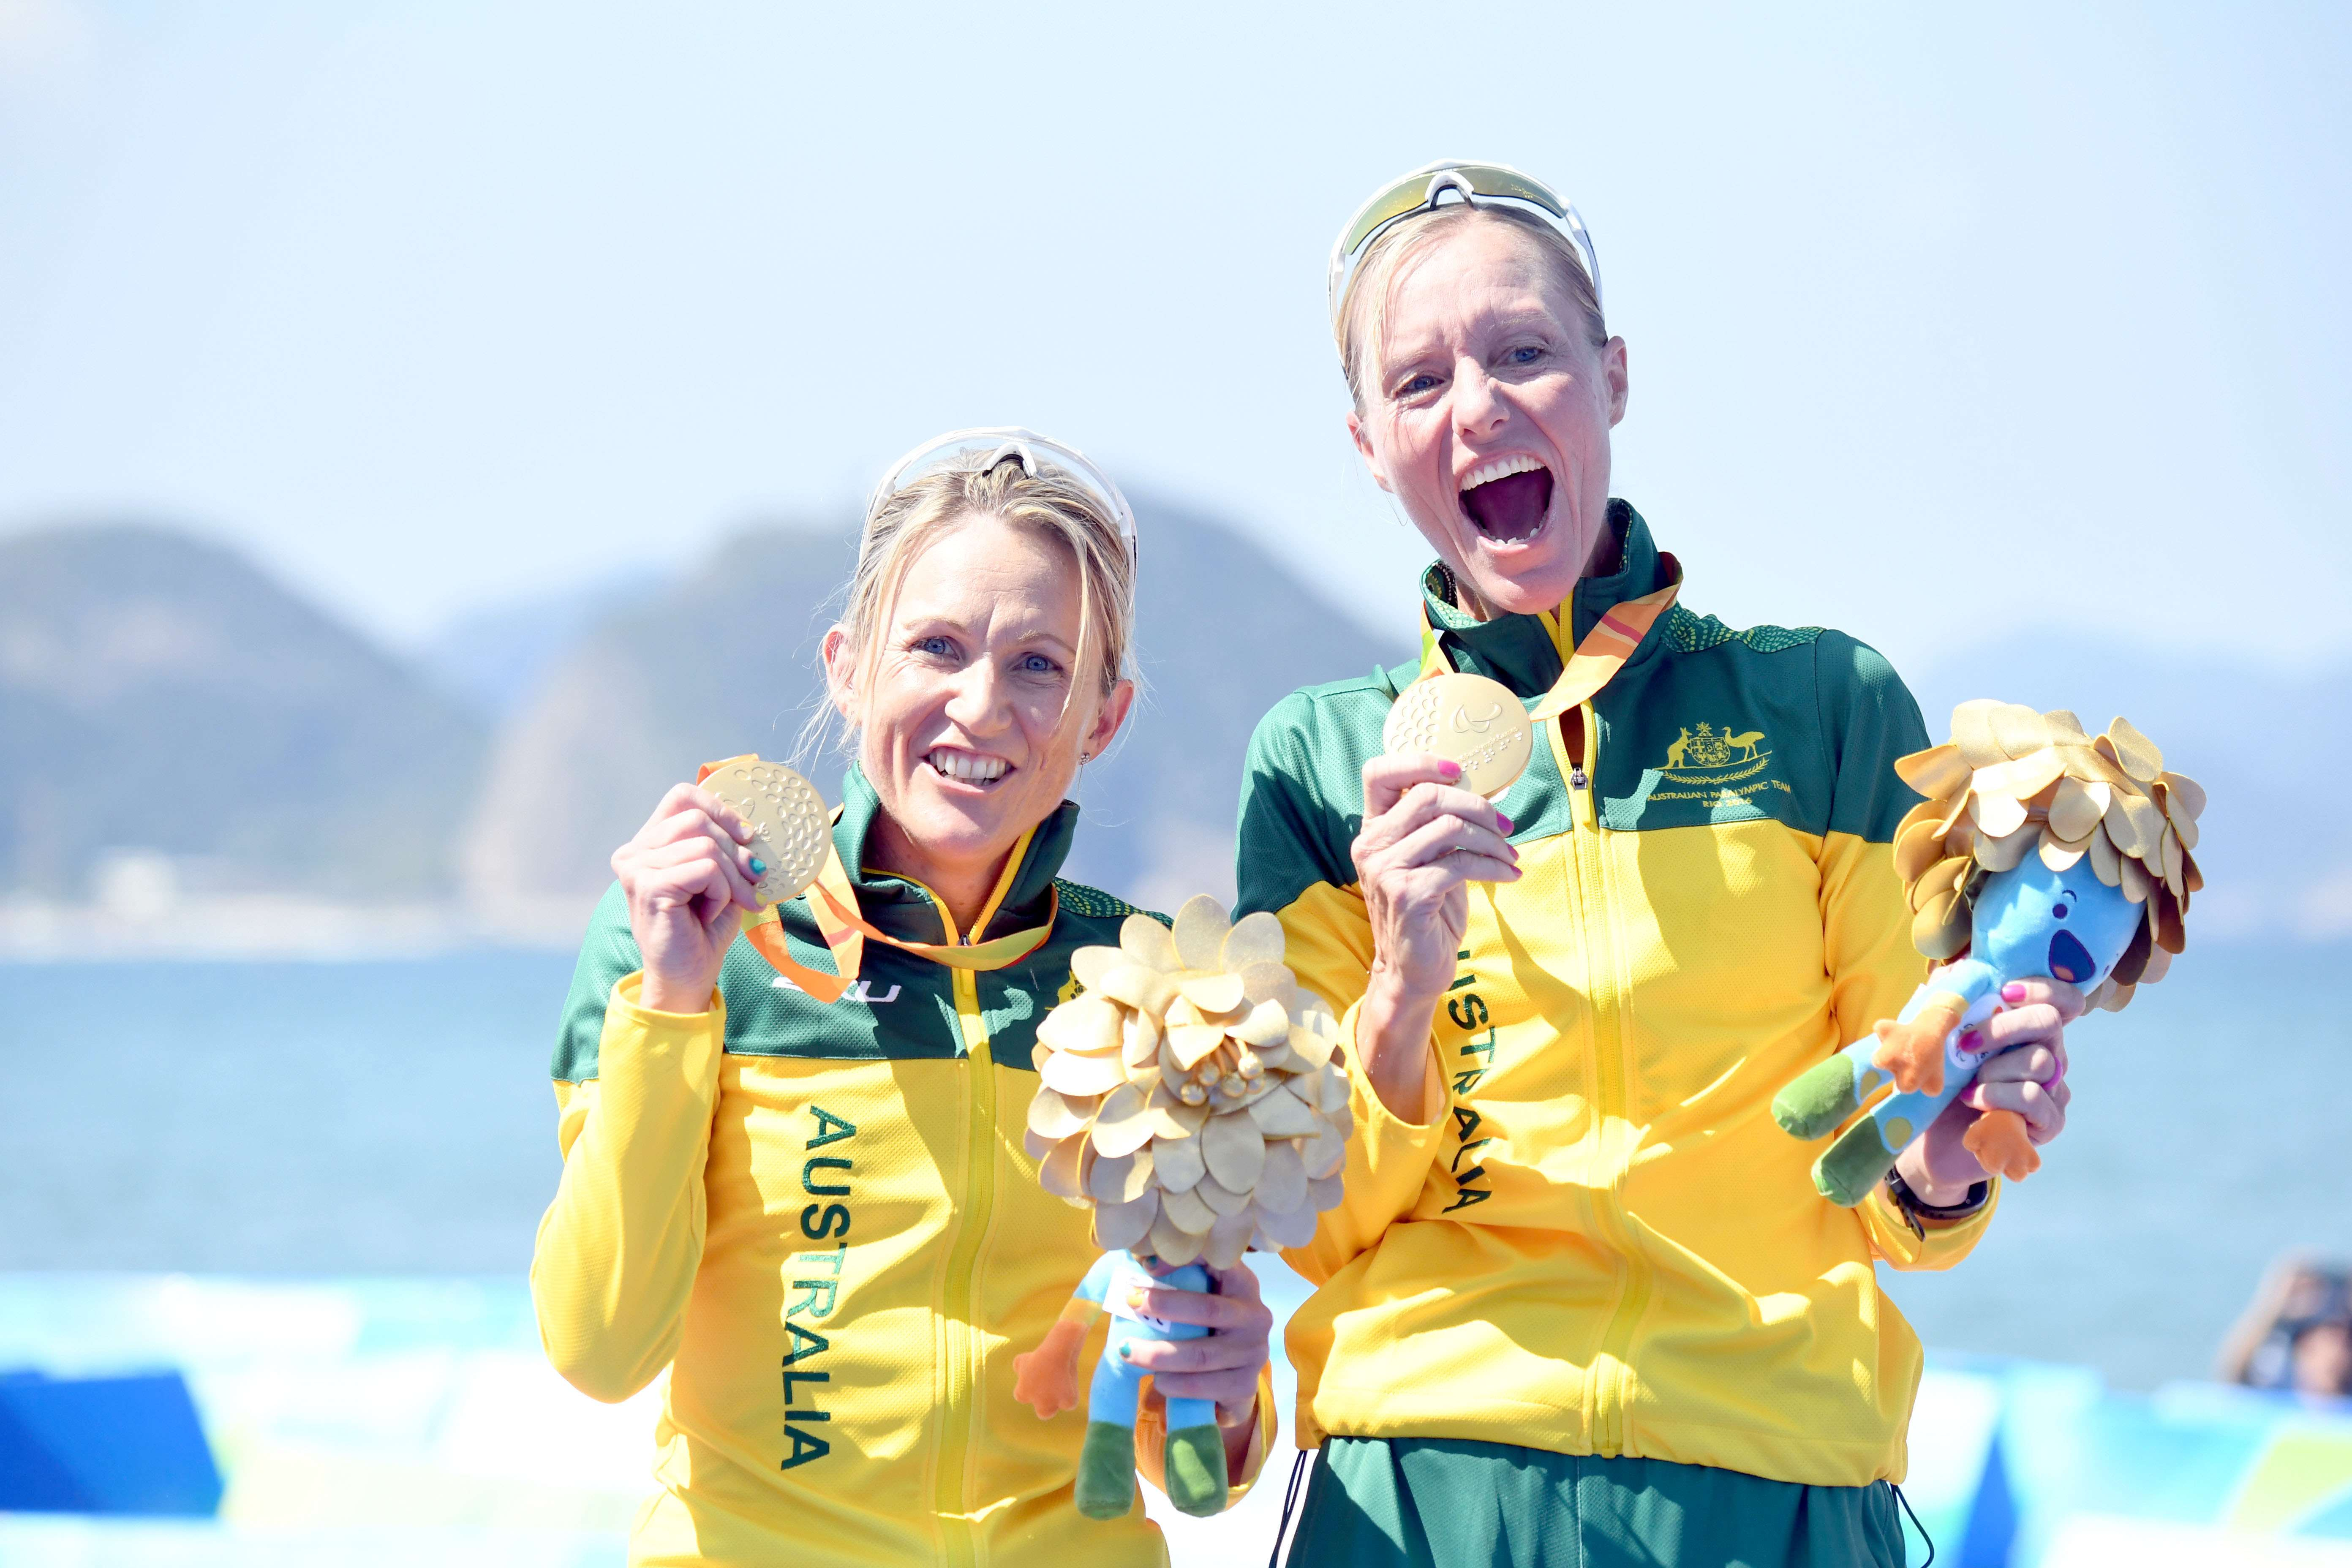 Katie Kelly & Michellie Jones win Paralympic Gold